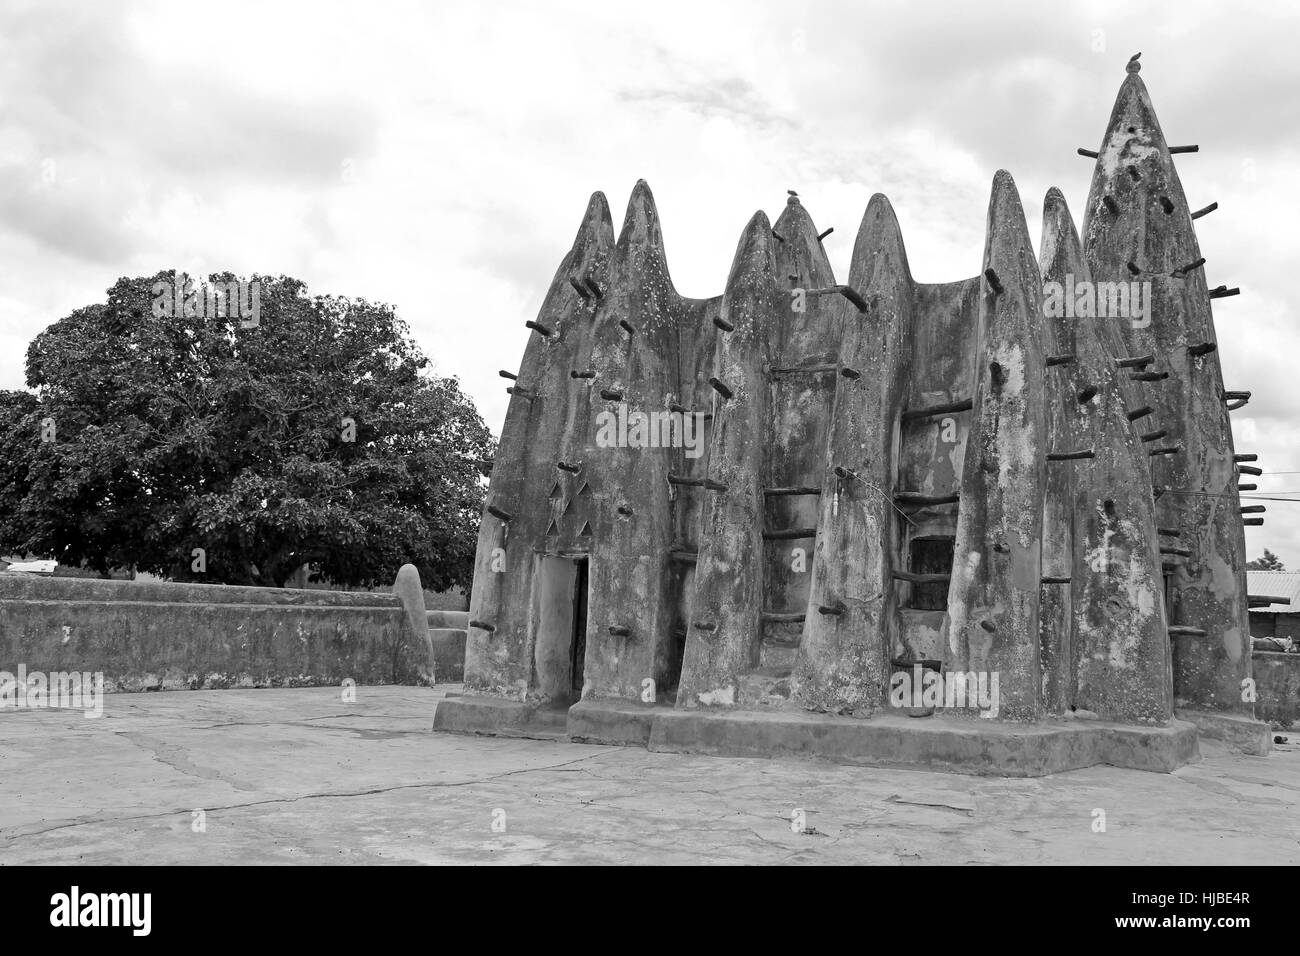 Nakore Mosque, Ghana Built With Sudanese Architectural Style Dating From The 16th Century - Stock Image